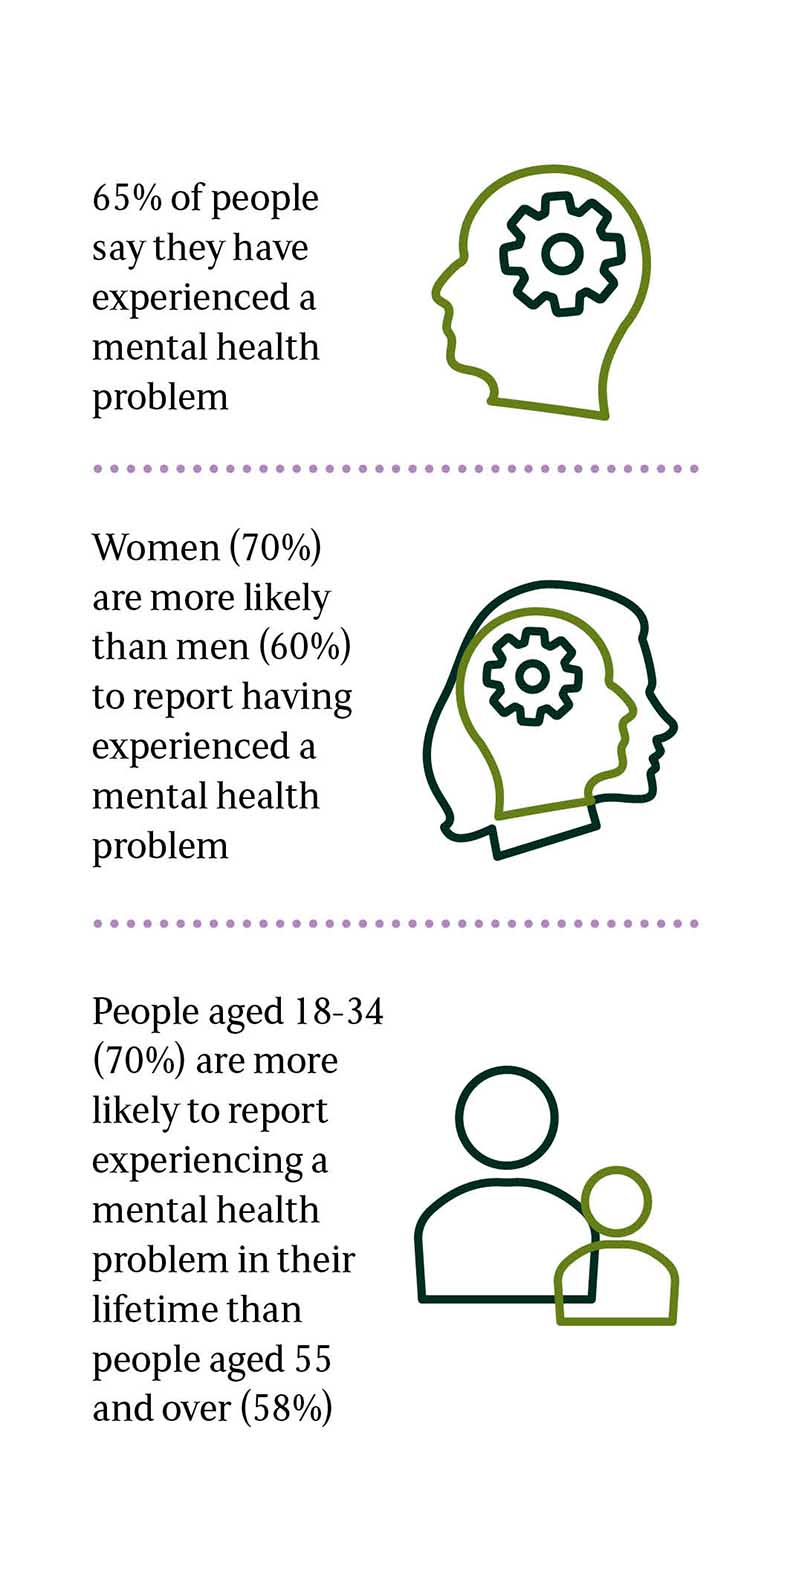 An infographic with three boxes of information: 65% of people say they have experienced a mental health problem (next to an outline of a person's head with a cog in where the brain sits); women (70%) are more likely than men (60%) to report having experienced a mental health problem (next to an outline of a woman's head covering a smaller outline of a man's head with a cog where they overlap); people aged 18-34 (70%) are more likely to report experiencing a mental health problem in their lifetime than people aged 55 and over (58%) (next to a dark green outline of a person overlapped by a smaller light green outline of another person)